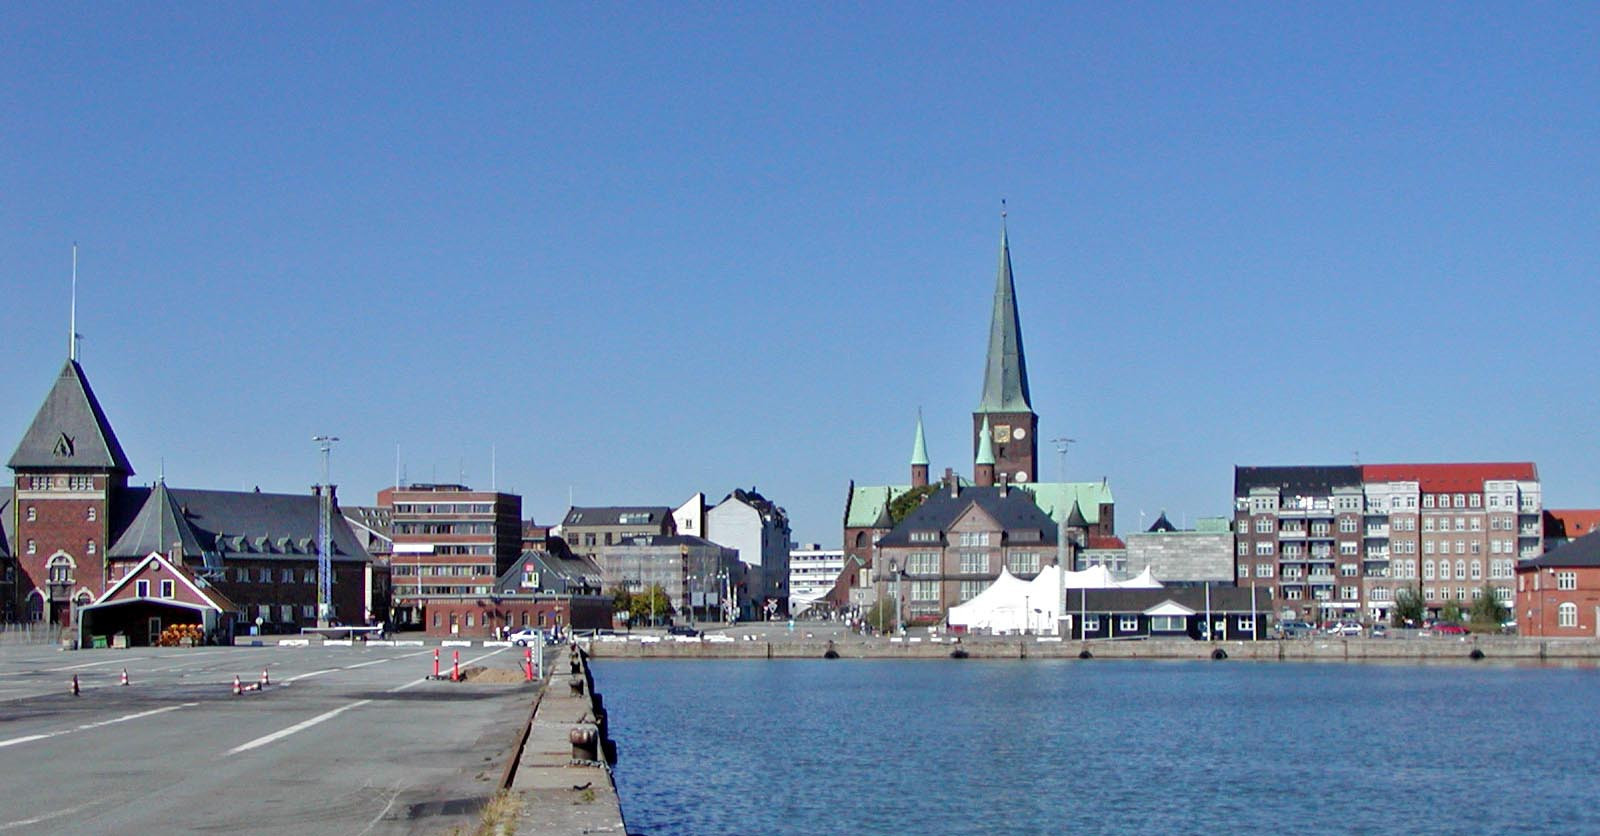 The Thomas and Uber Cup Finals will take place in Aarhus in October ©Wikipedia